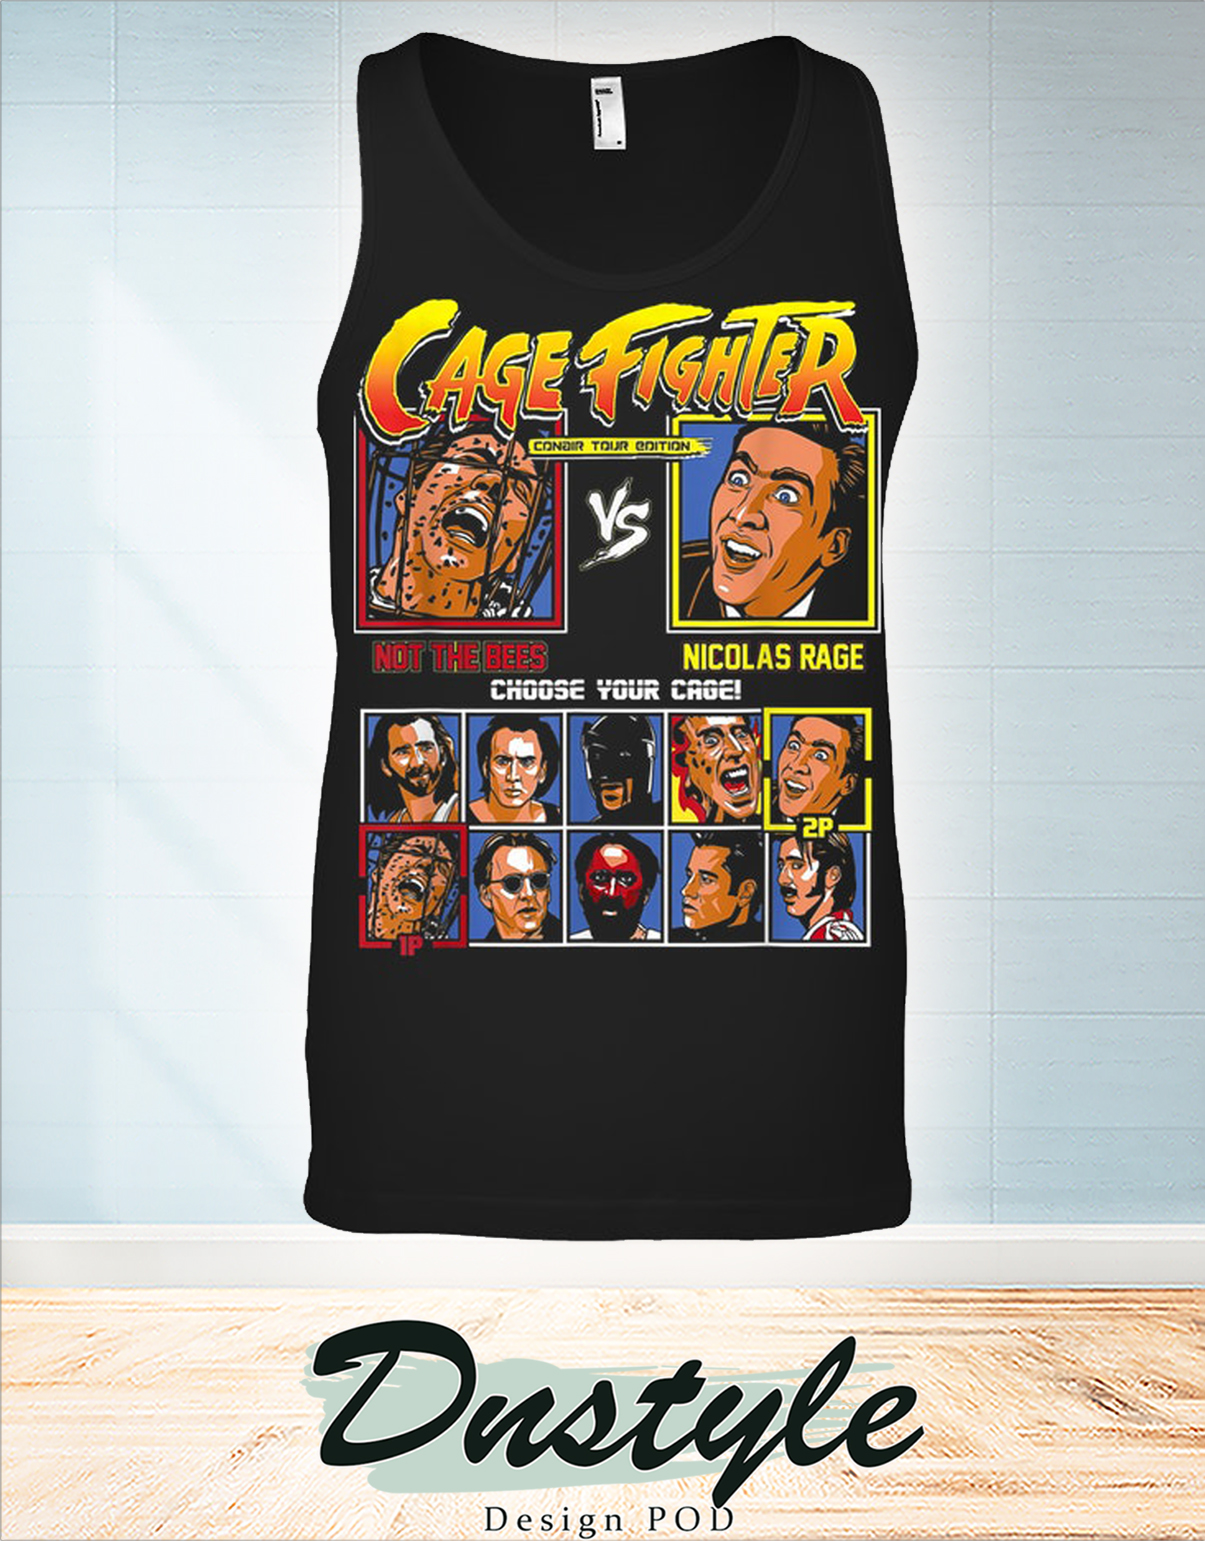 Cage fighter not the bees vs nicolas rage tank